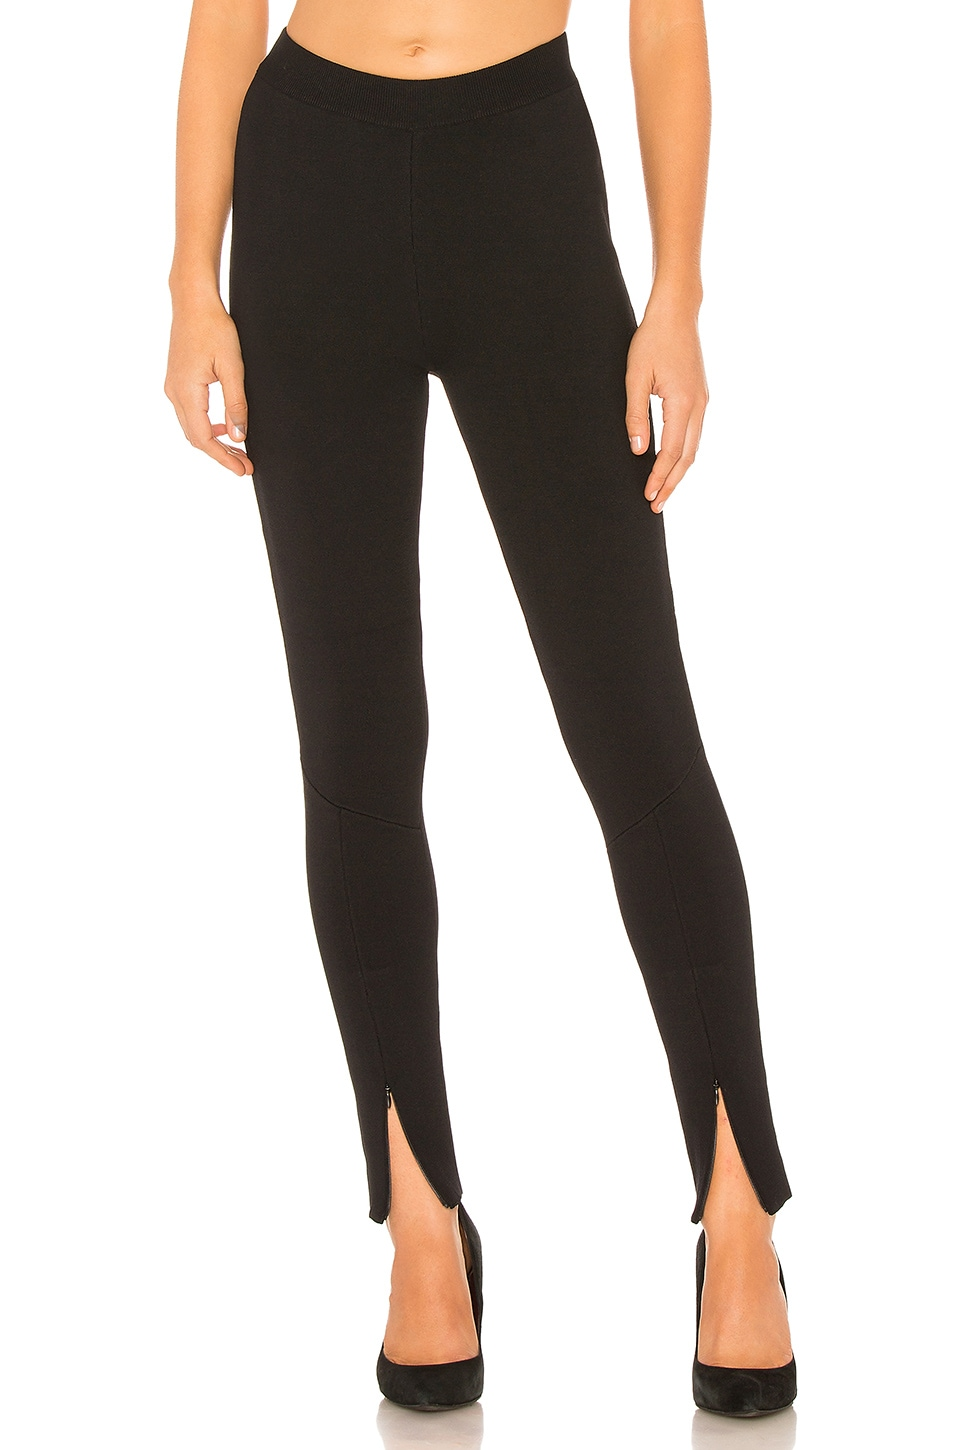 Rebecca Vallance Violet Knit Pant in Black